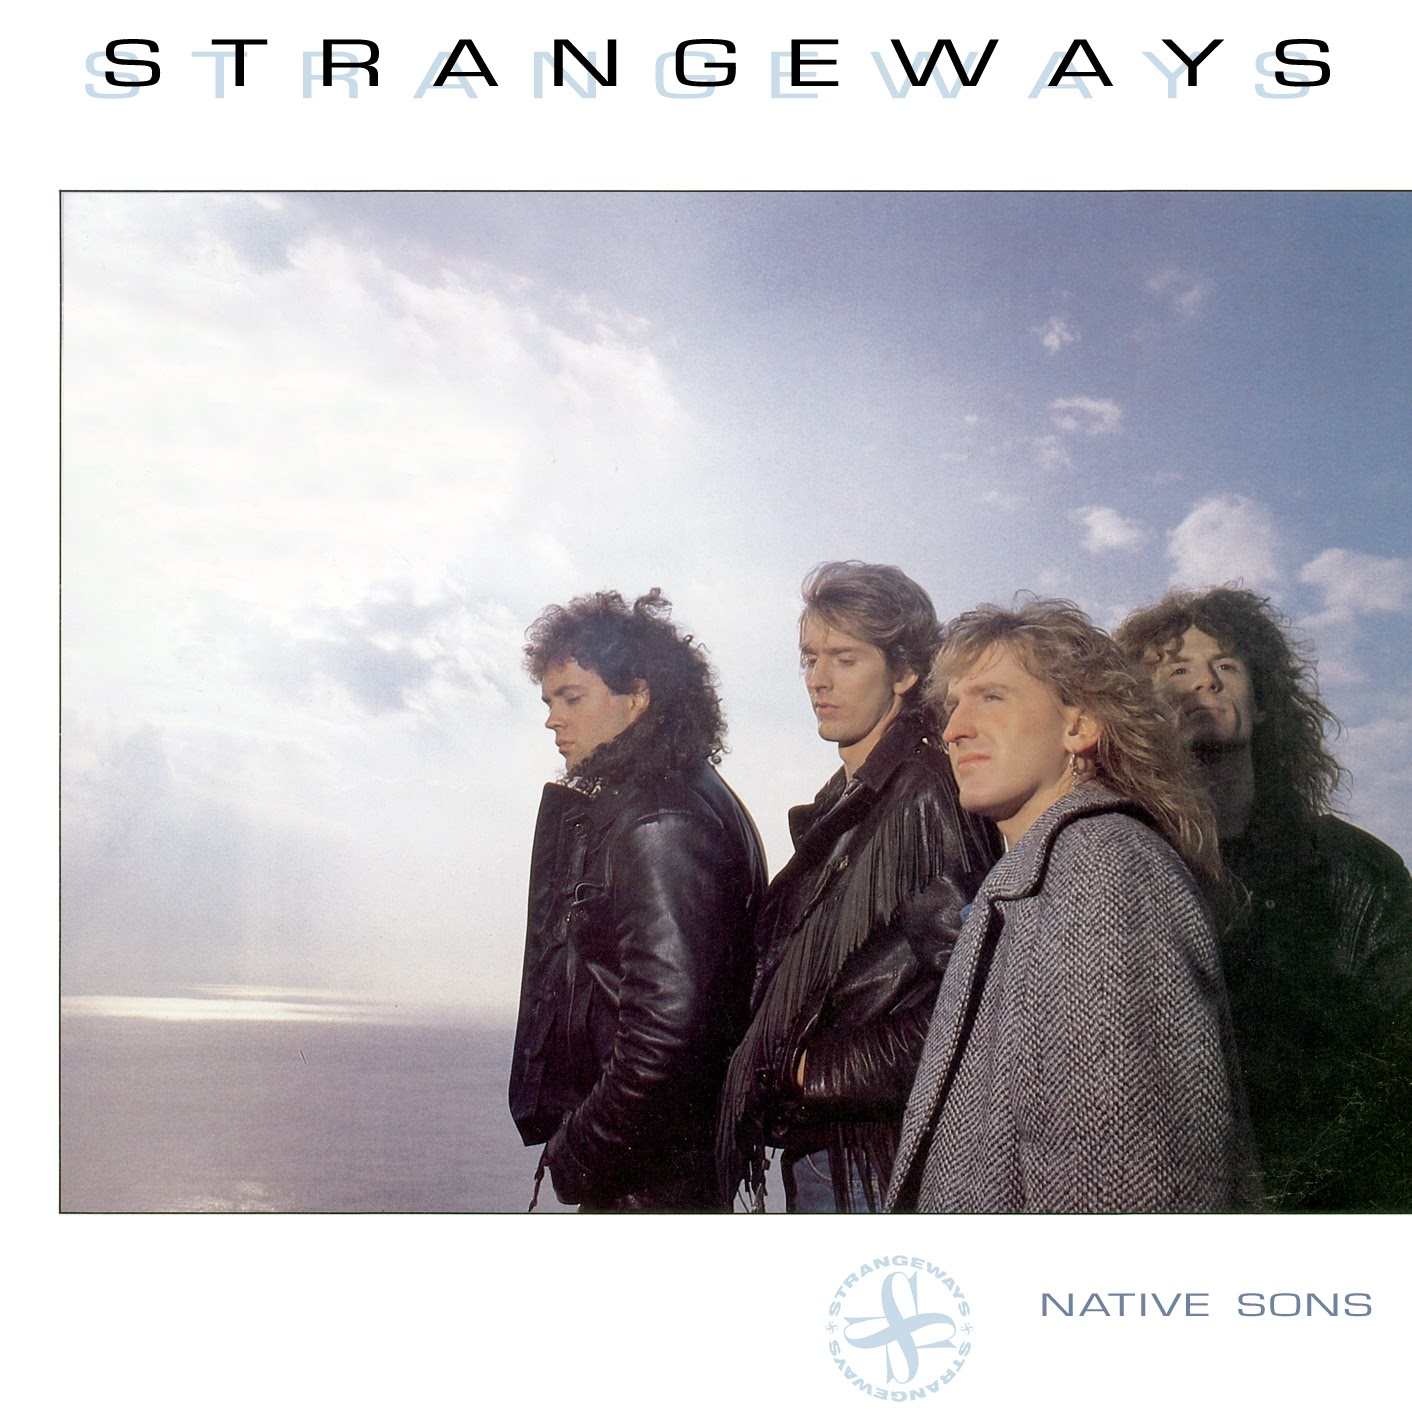 Strangeways Native sons 1987 aor melodic rock